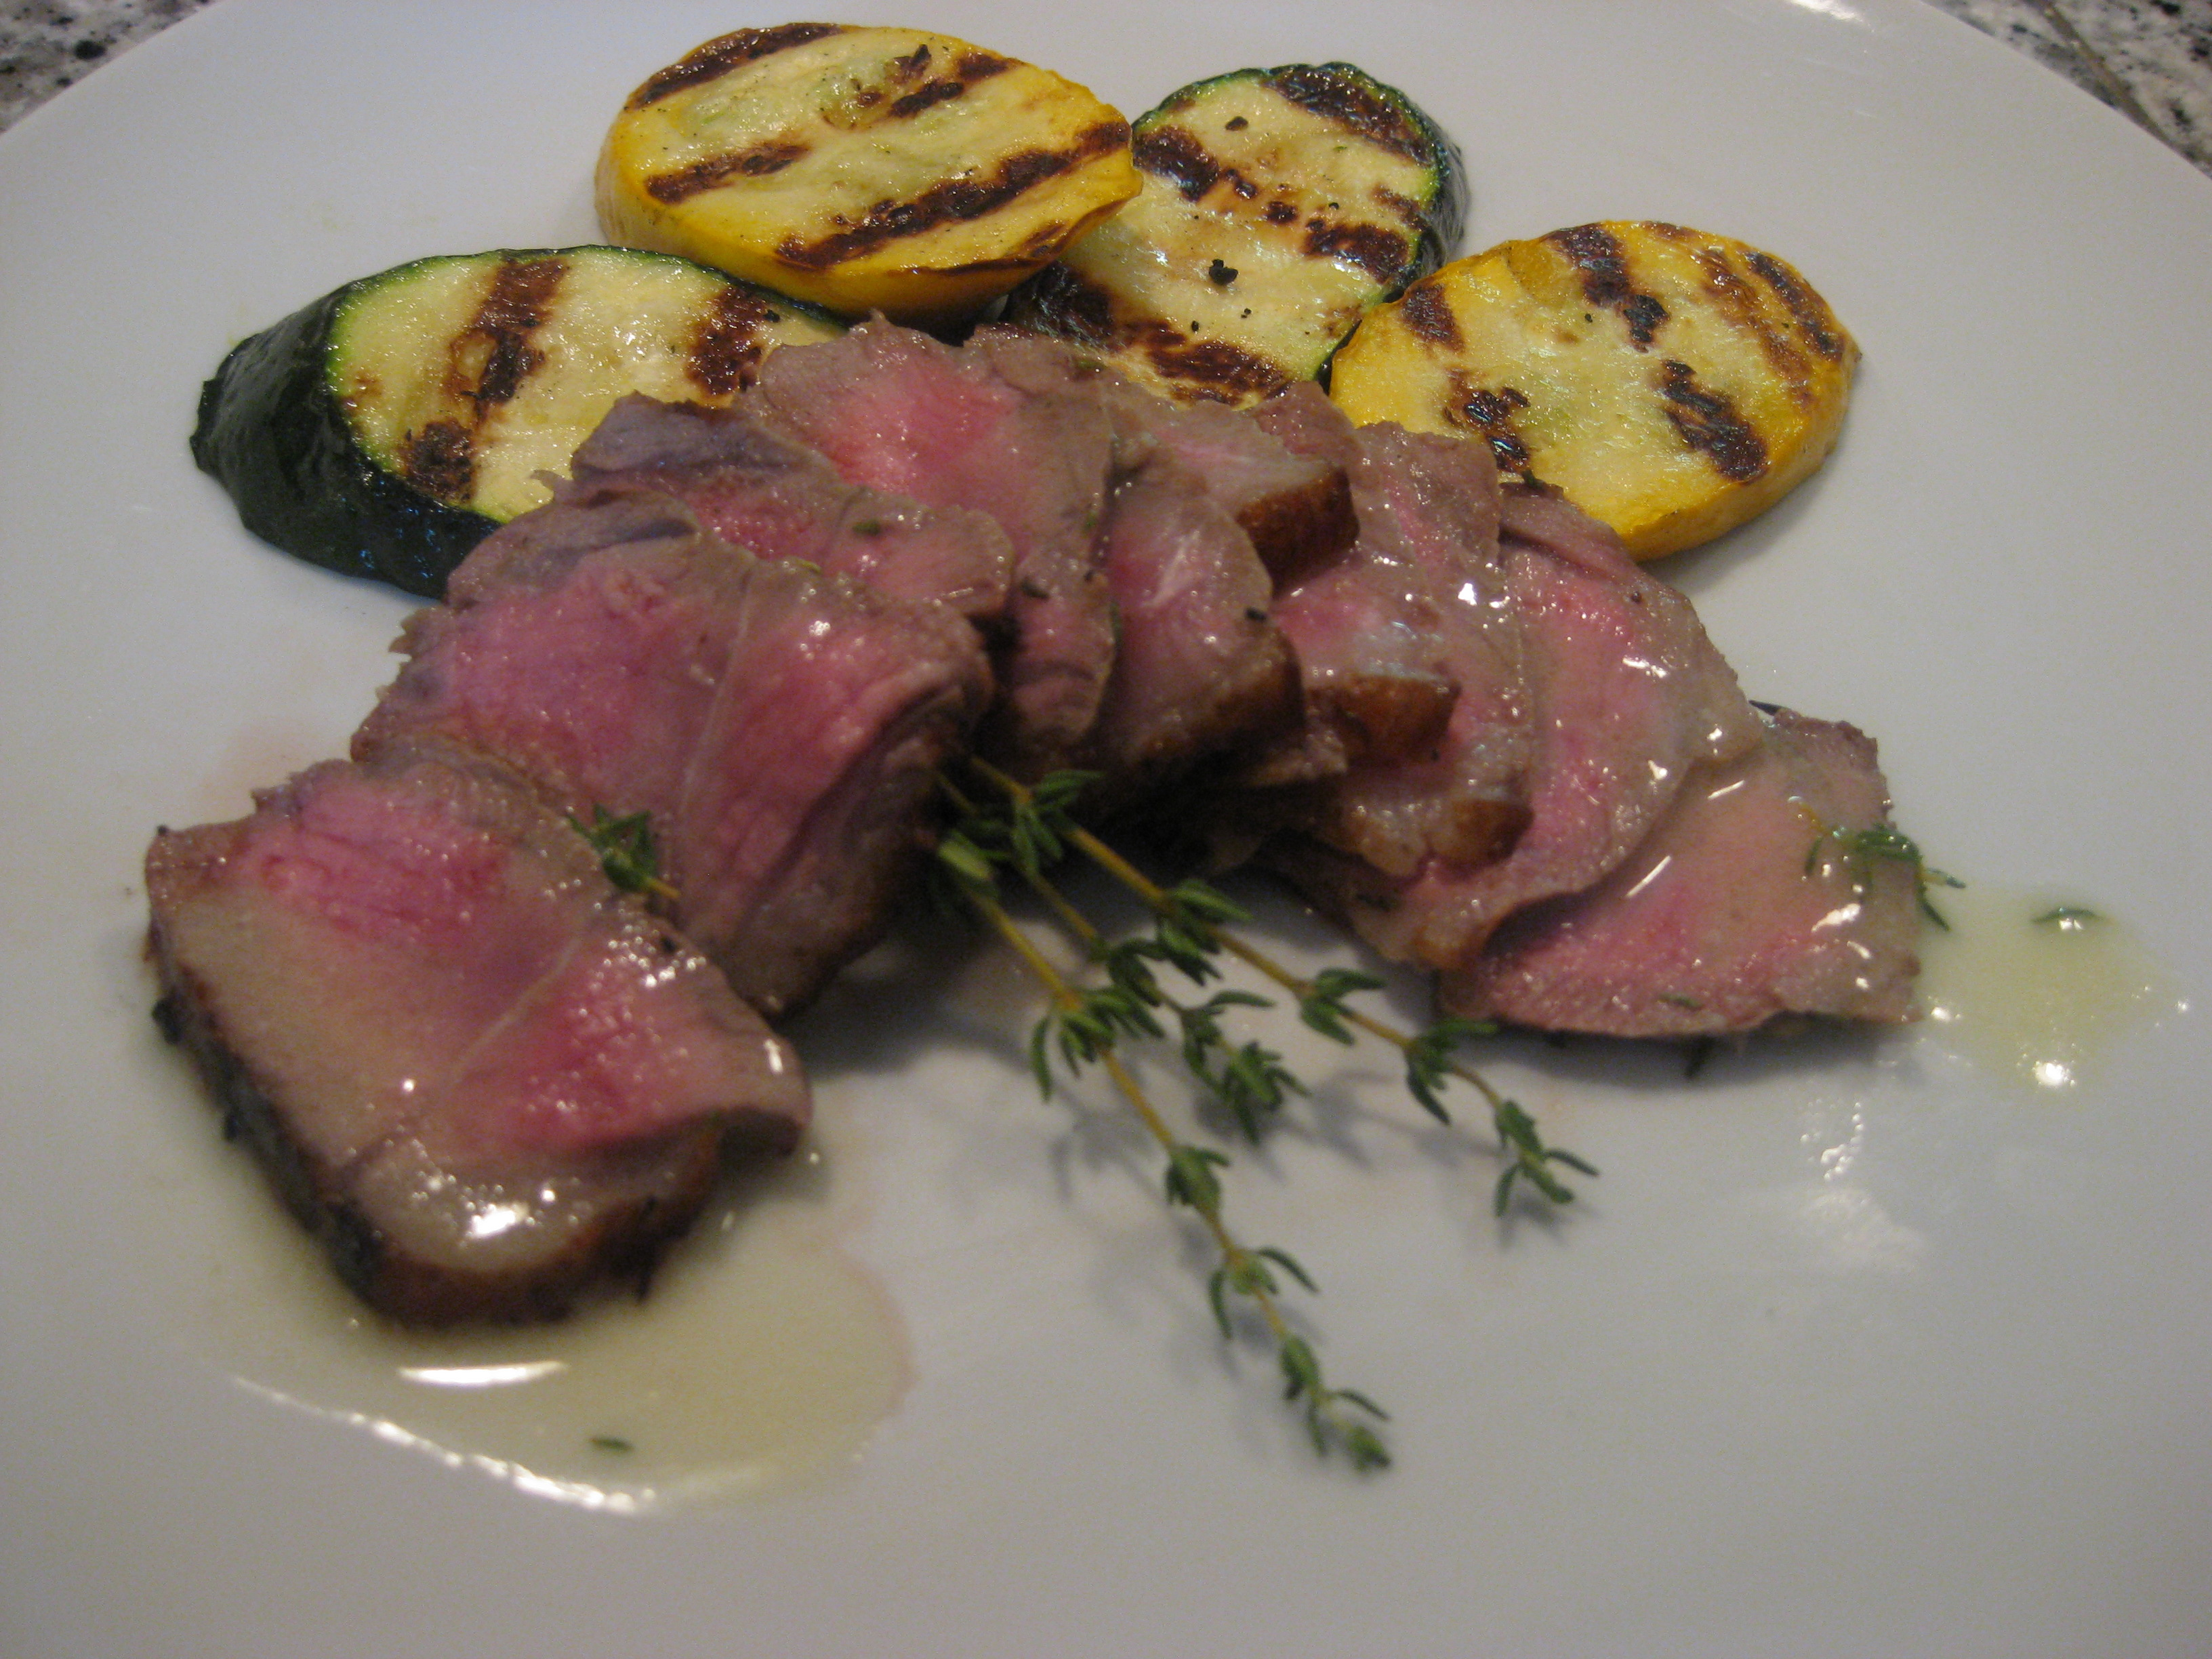 Lemon steaks with thyme butter